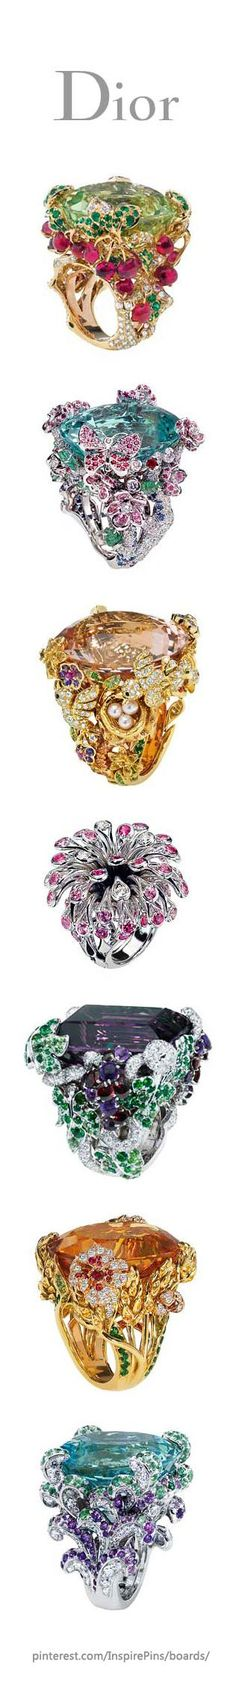 Dior Joaillerie Rings